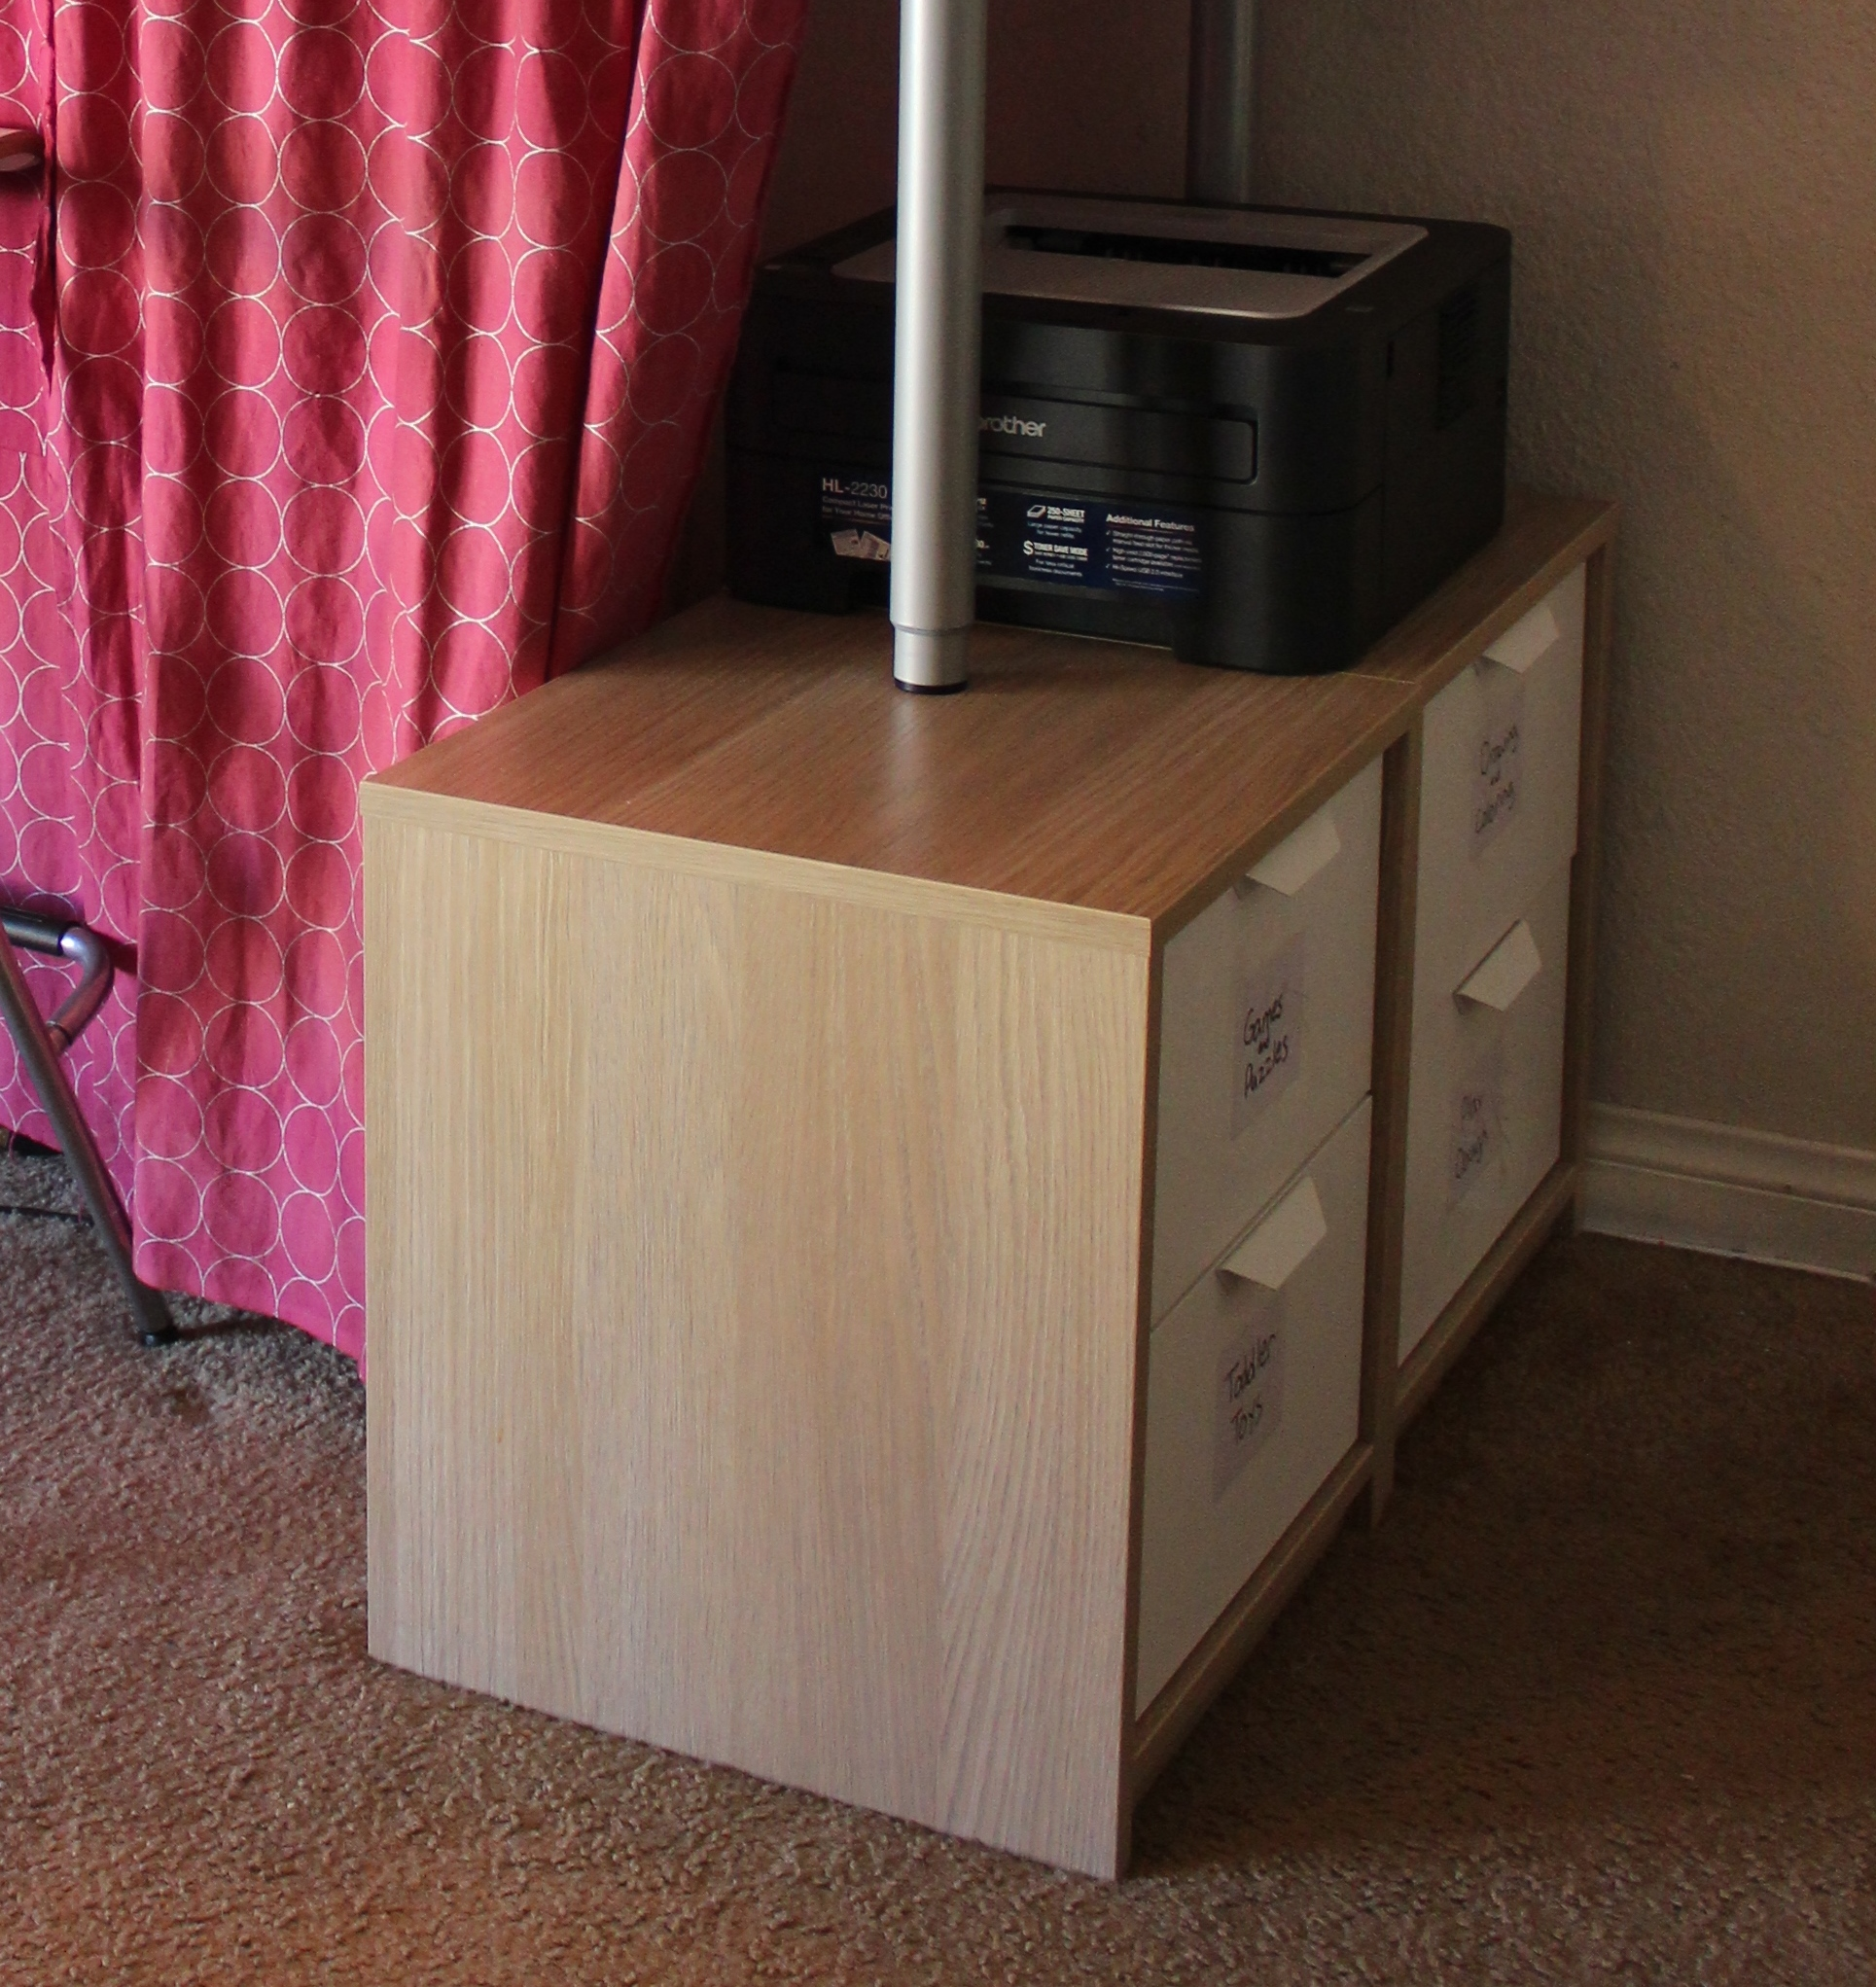 Ikea Adjustable Table Legs Small House Living Room Re-do (w/ Ikea Hack Standing Desk